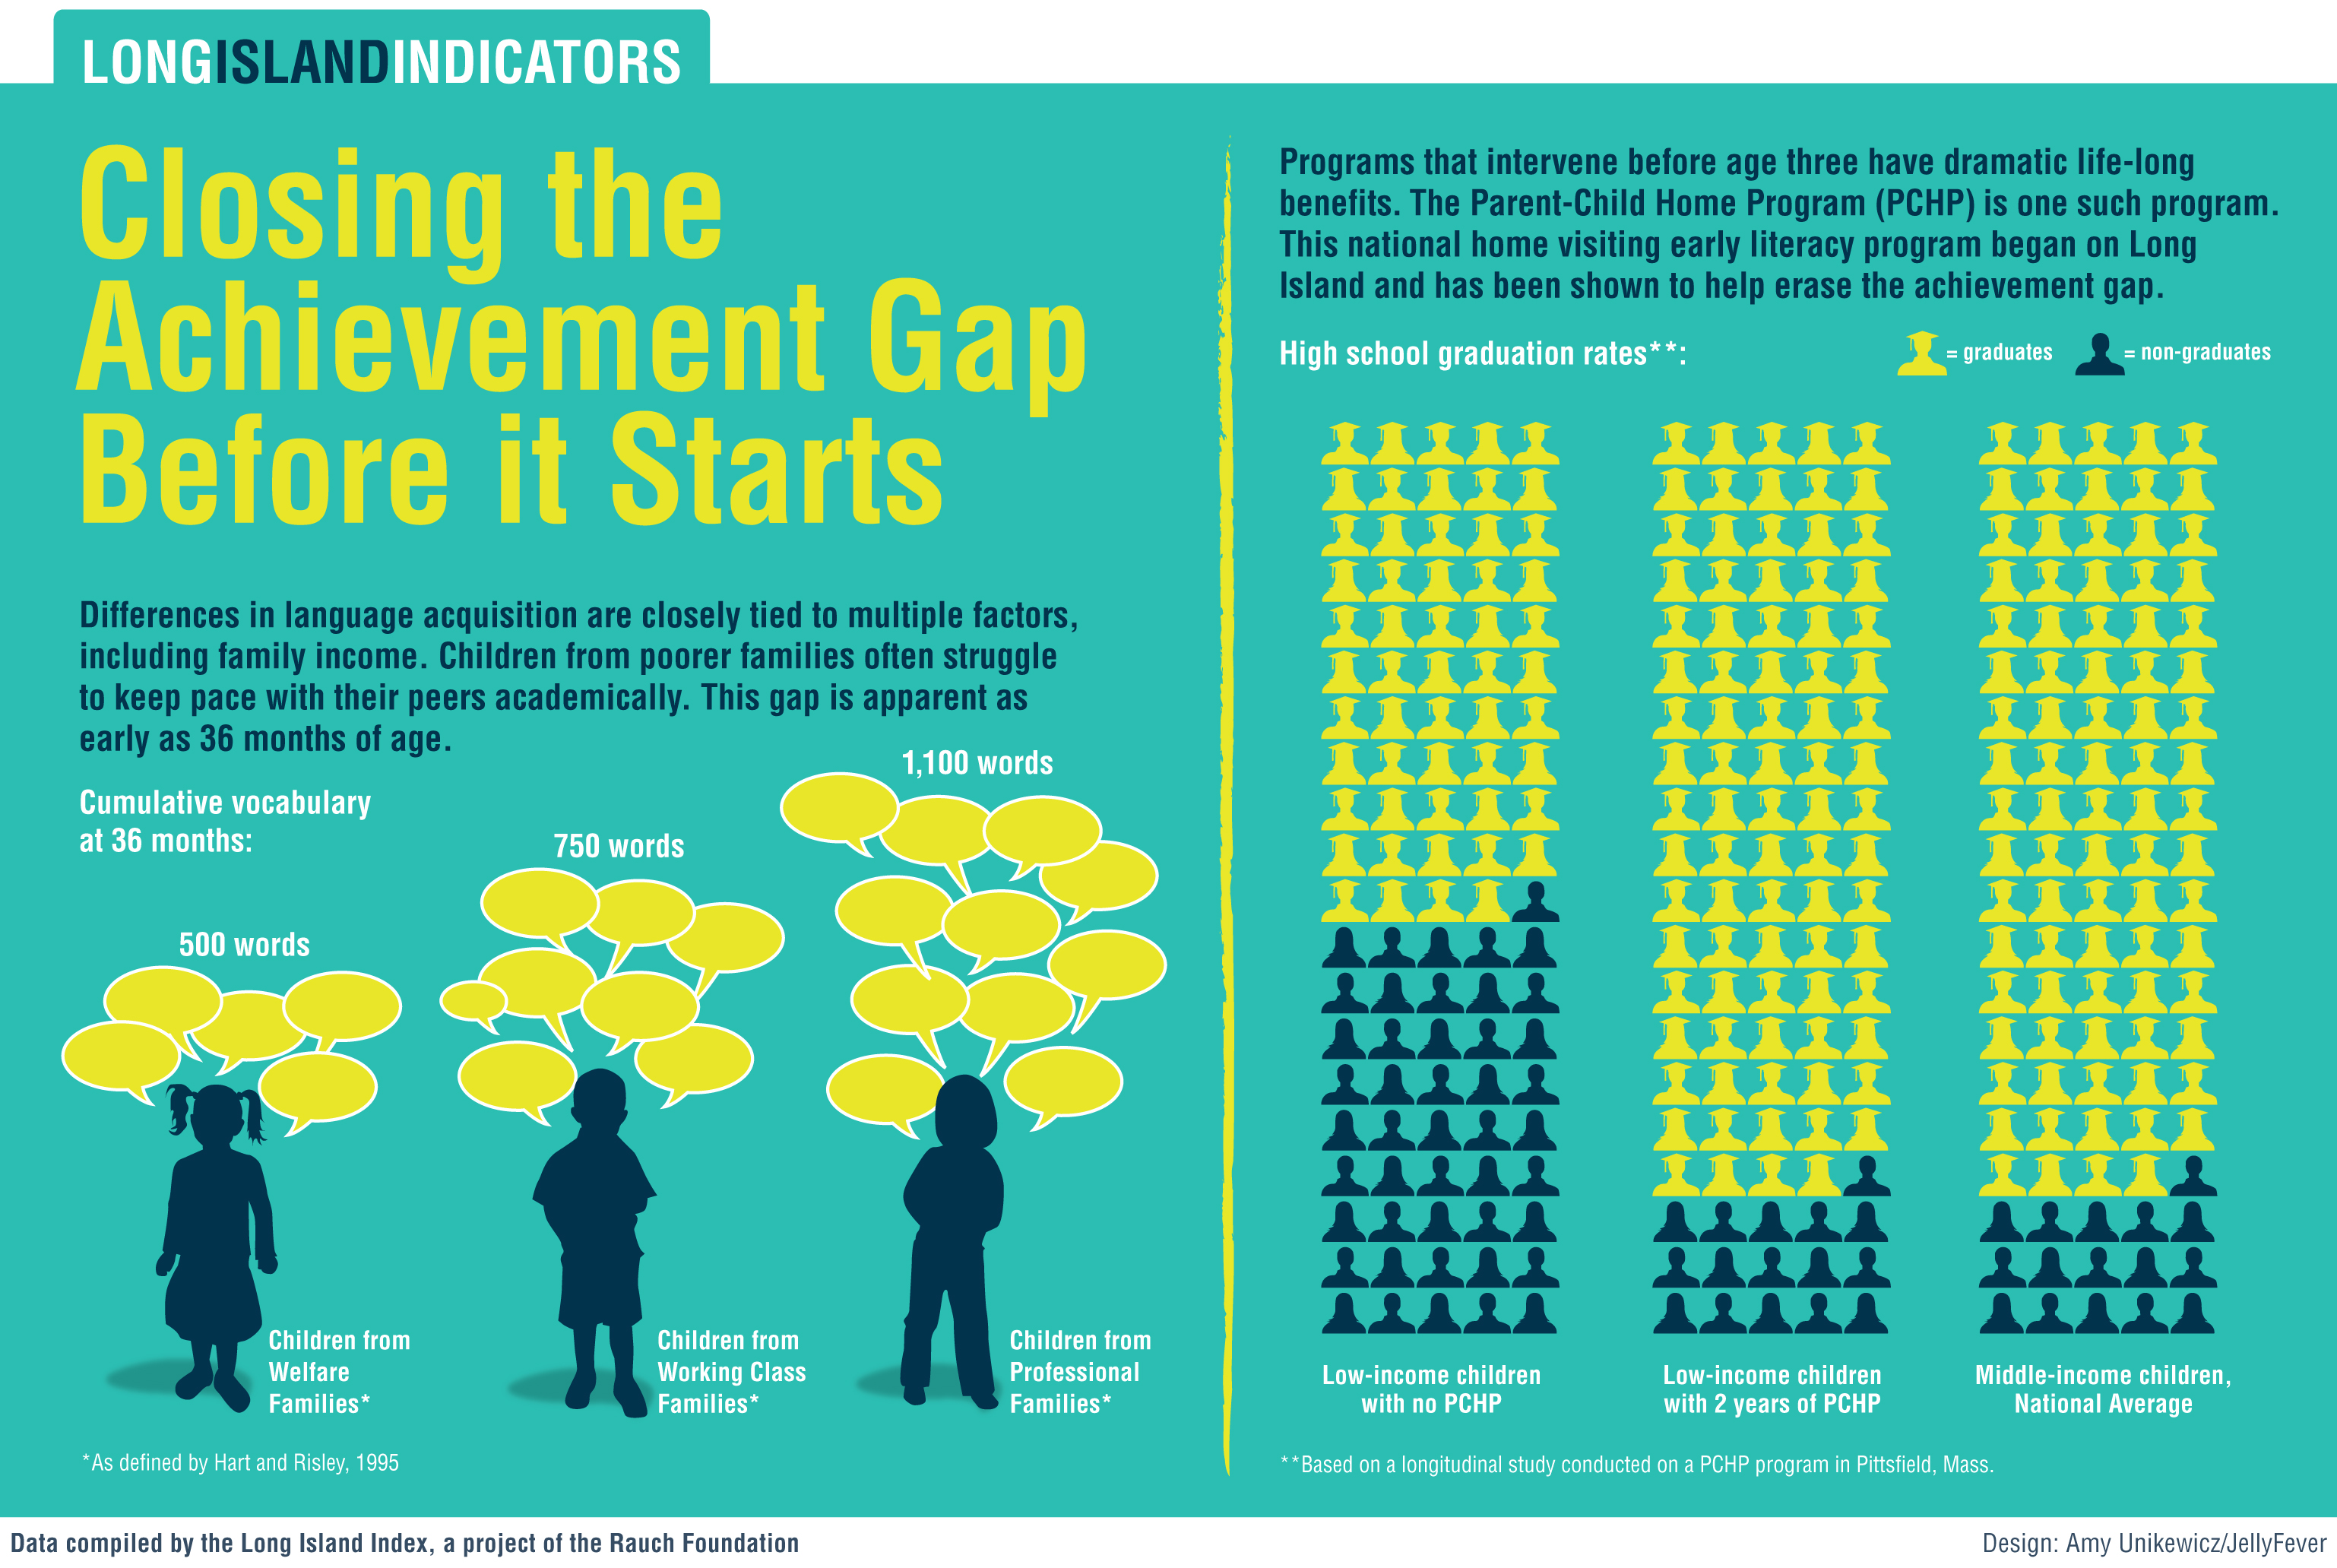 closing achievment gap After 50 years, the achievement gap between white and black students has barely narrowed.